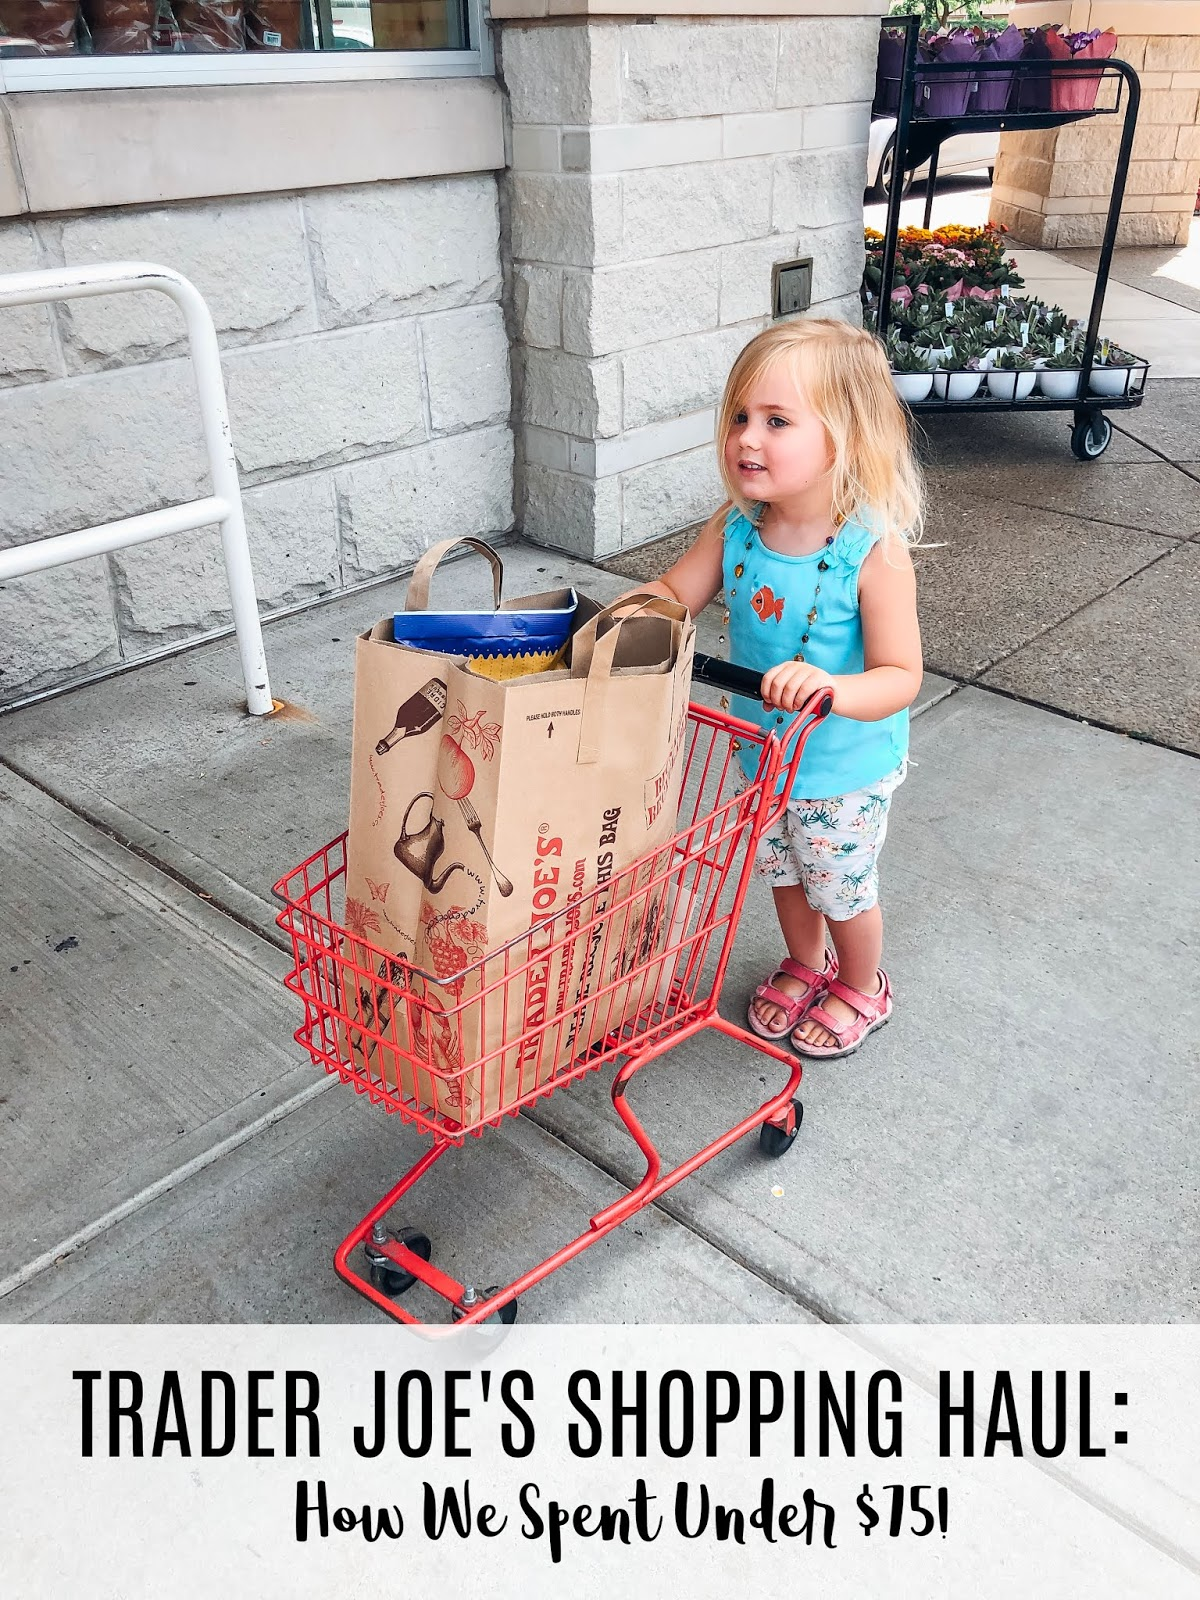 Trader Joe's Grocery Shopping Haul: How We Spent $75